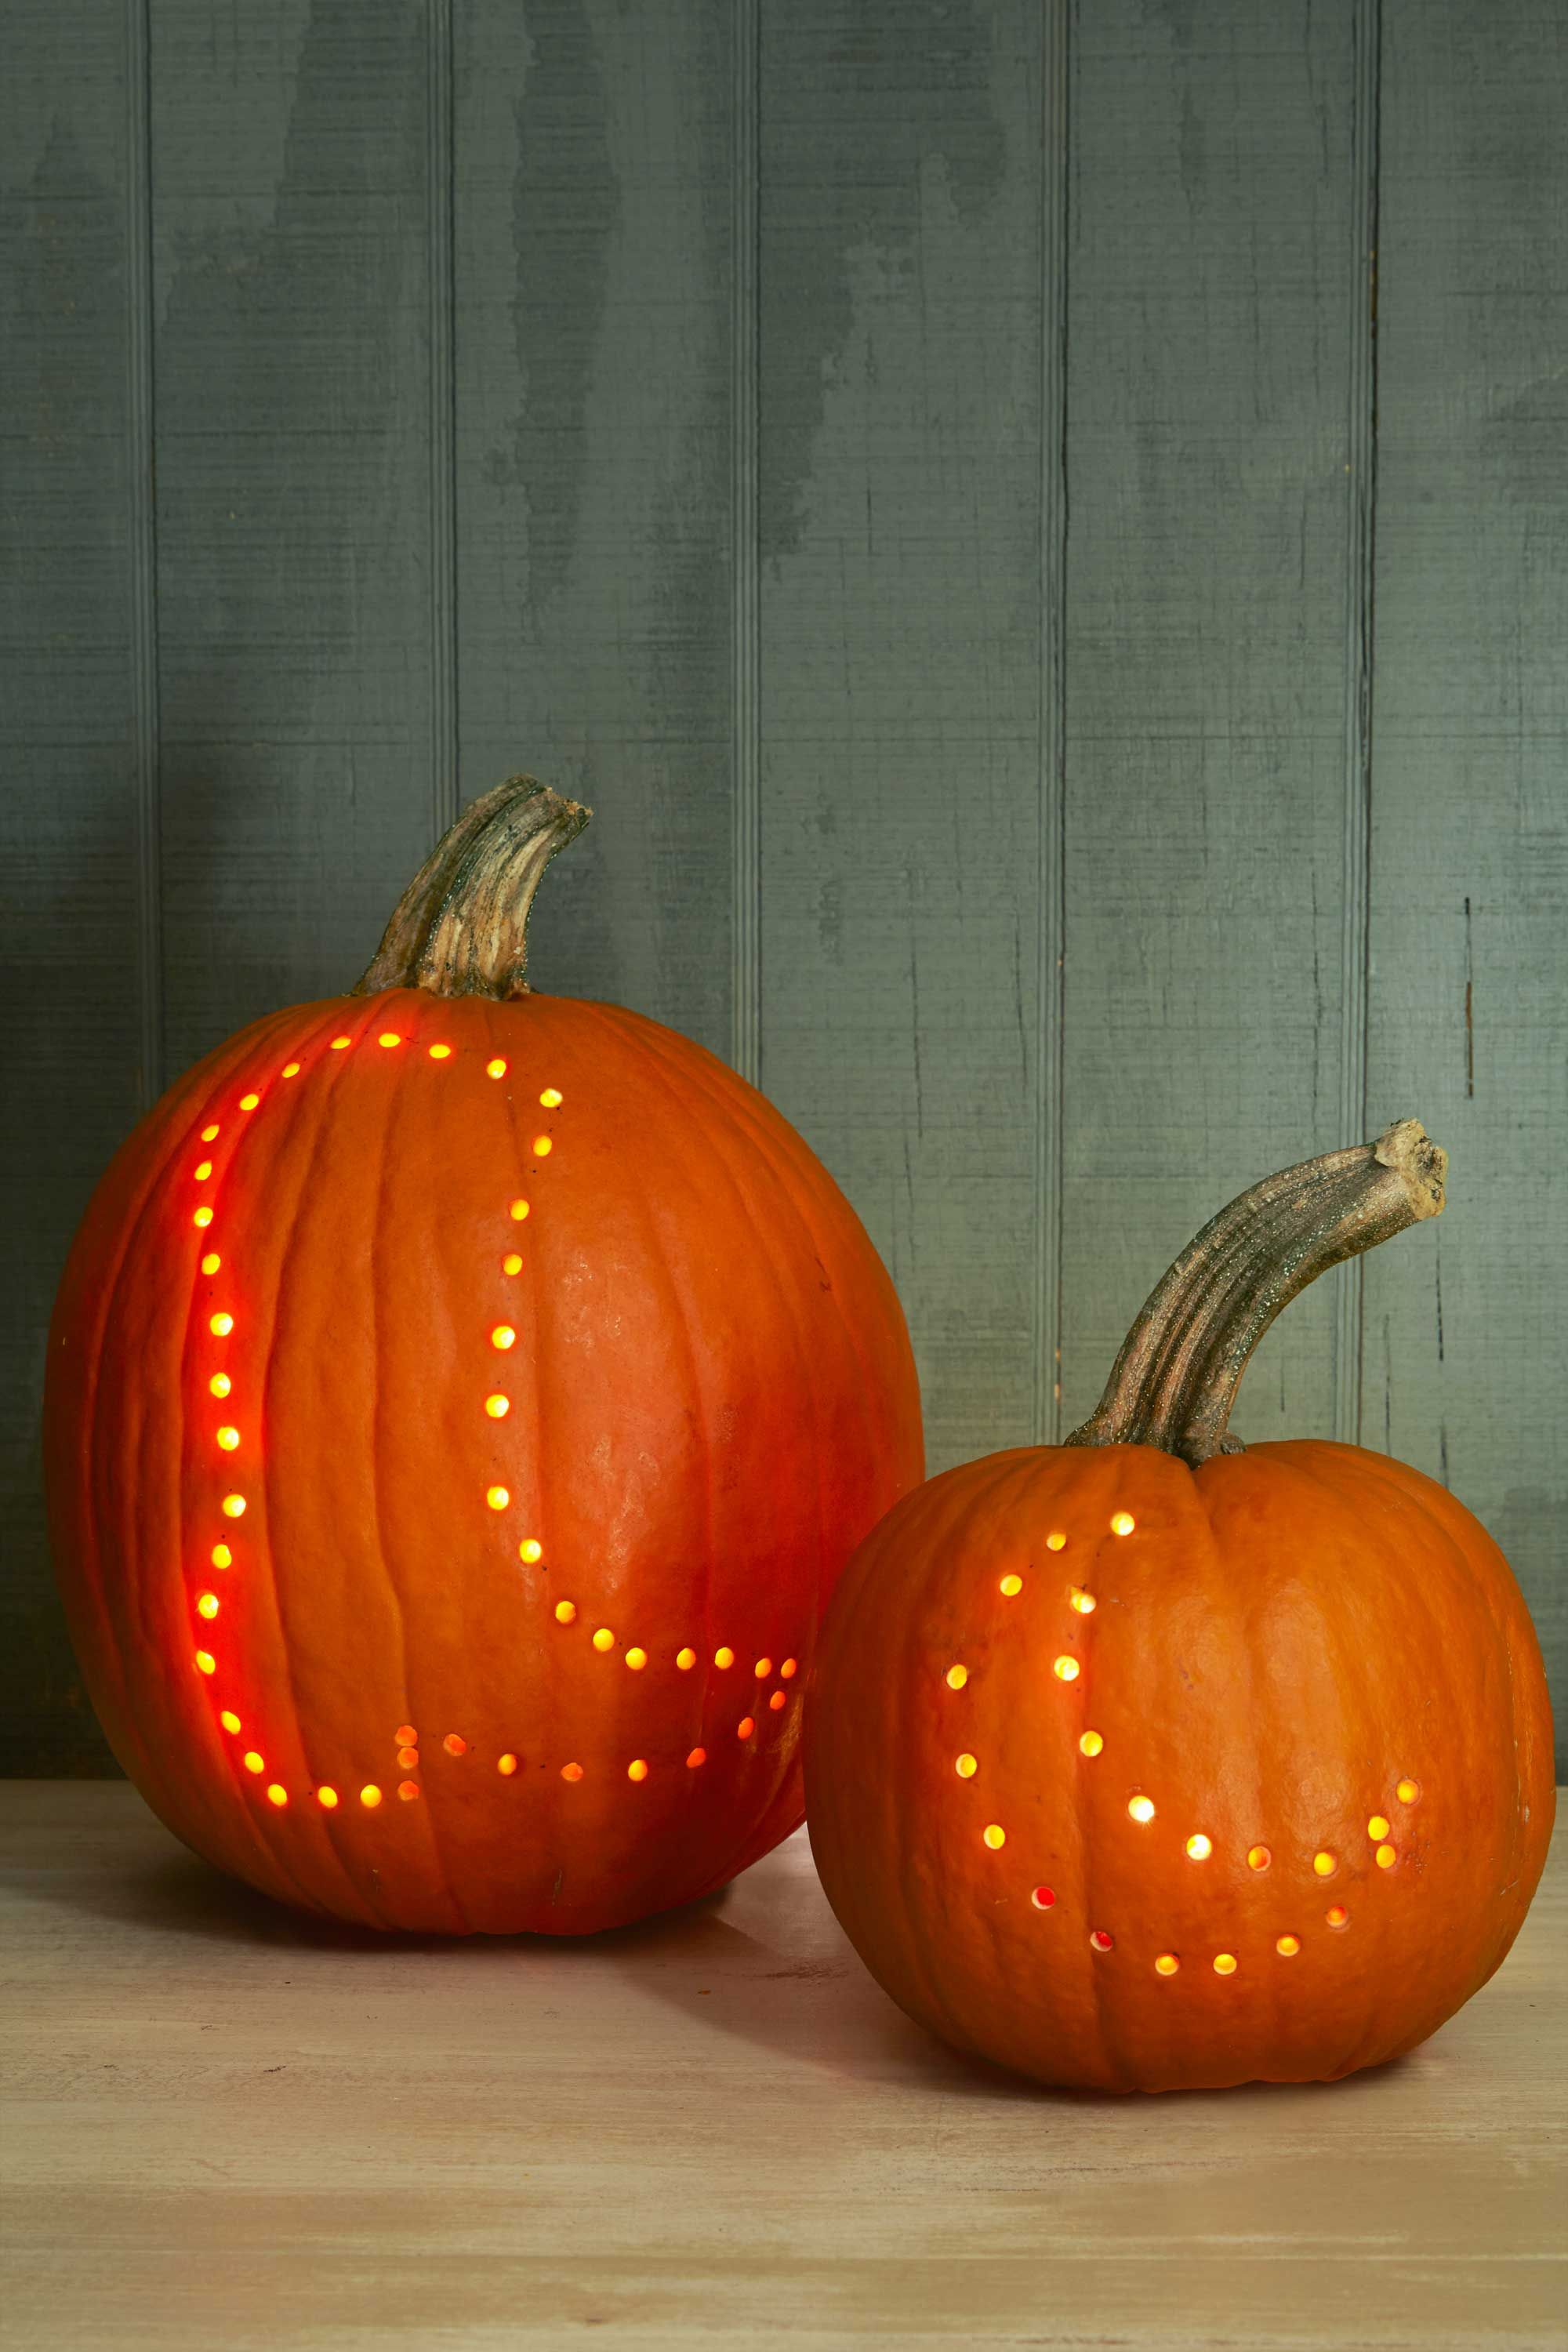 Easy pumpkin carving ideas fun patterns designs for